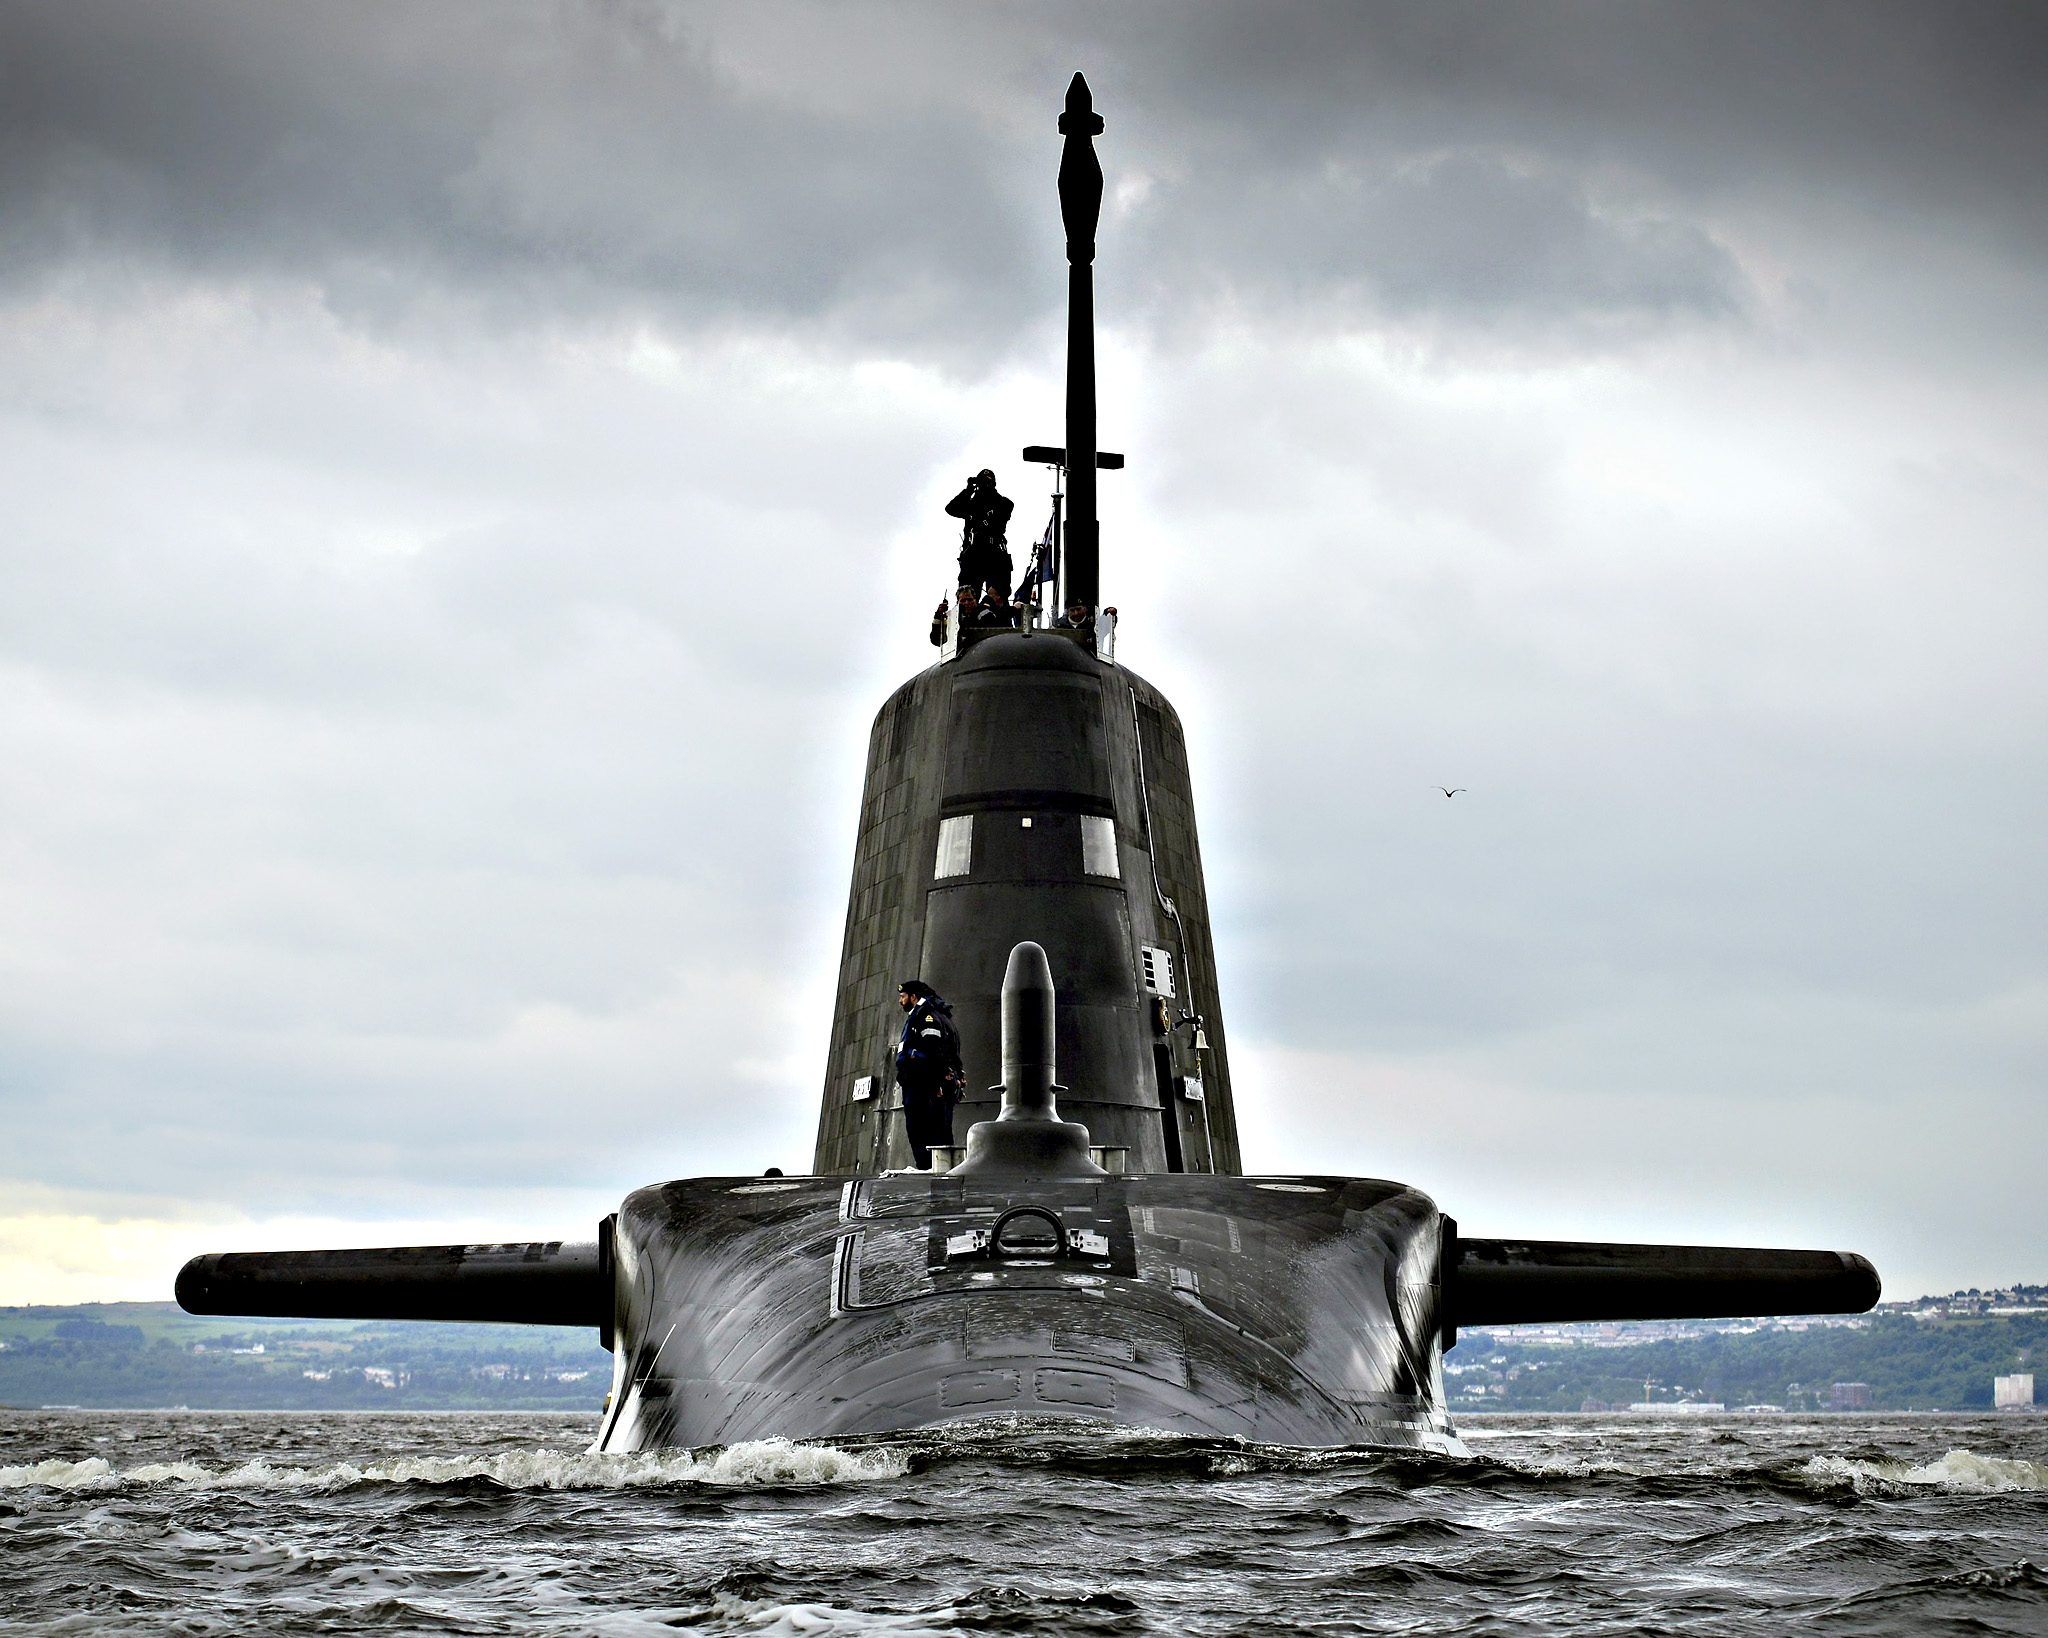 HMS Artful, the third of the British Royal Navy's new Astute Class attack submarines on arrival at her Scottish base port of HMNB Clyde, Faslane, Scotland, 19 August 2015 from where she will carry out sea trials before entering service later this year. The 7,400-tonne Artful left BAE Systems construction yard at Barrow-in-Furness in Cumbria several days ago before sailing to her new home at Her Majesty s Naval Base (HMNB) Clyde. She will provide the Royal Navy with the most technologically advanced submarine Britain has ever sent to sea. HMNB Clyde will become a home for the Royal Navy s submarines and associated support by 2020, creating a submarine centre of specialisation. The base is amongst the largest single-site employers in Scotland, with 6,700 military and civilian personnel, increasing under current UK Government plans to 8,200 by 2022.